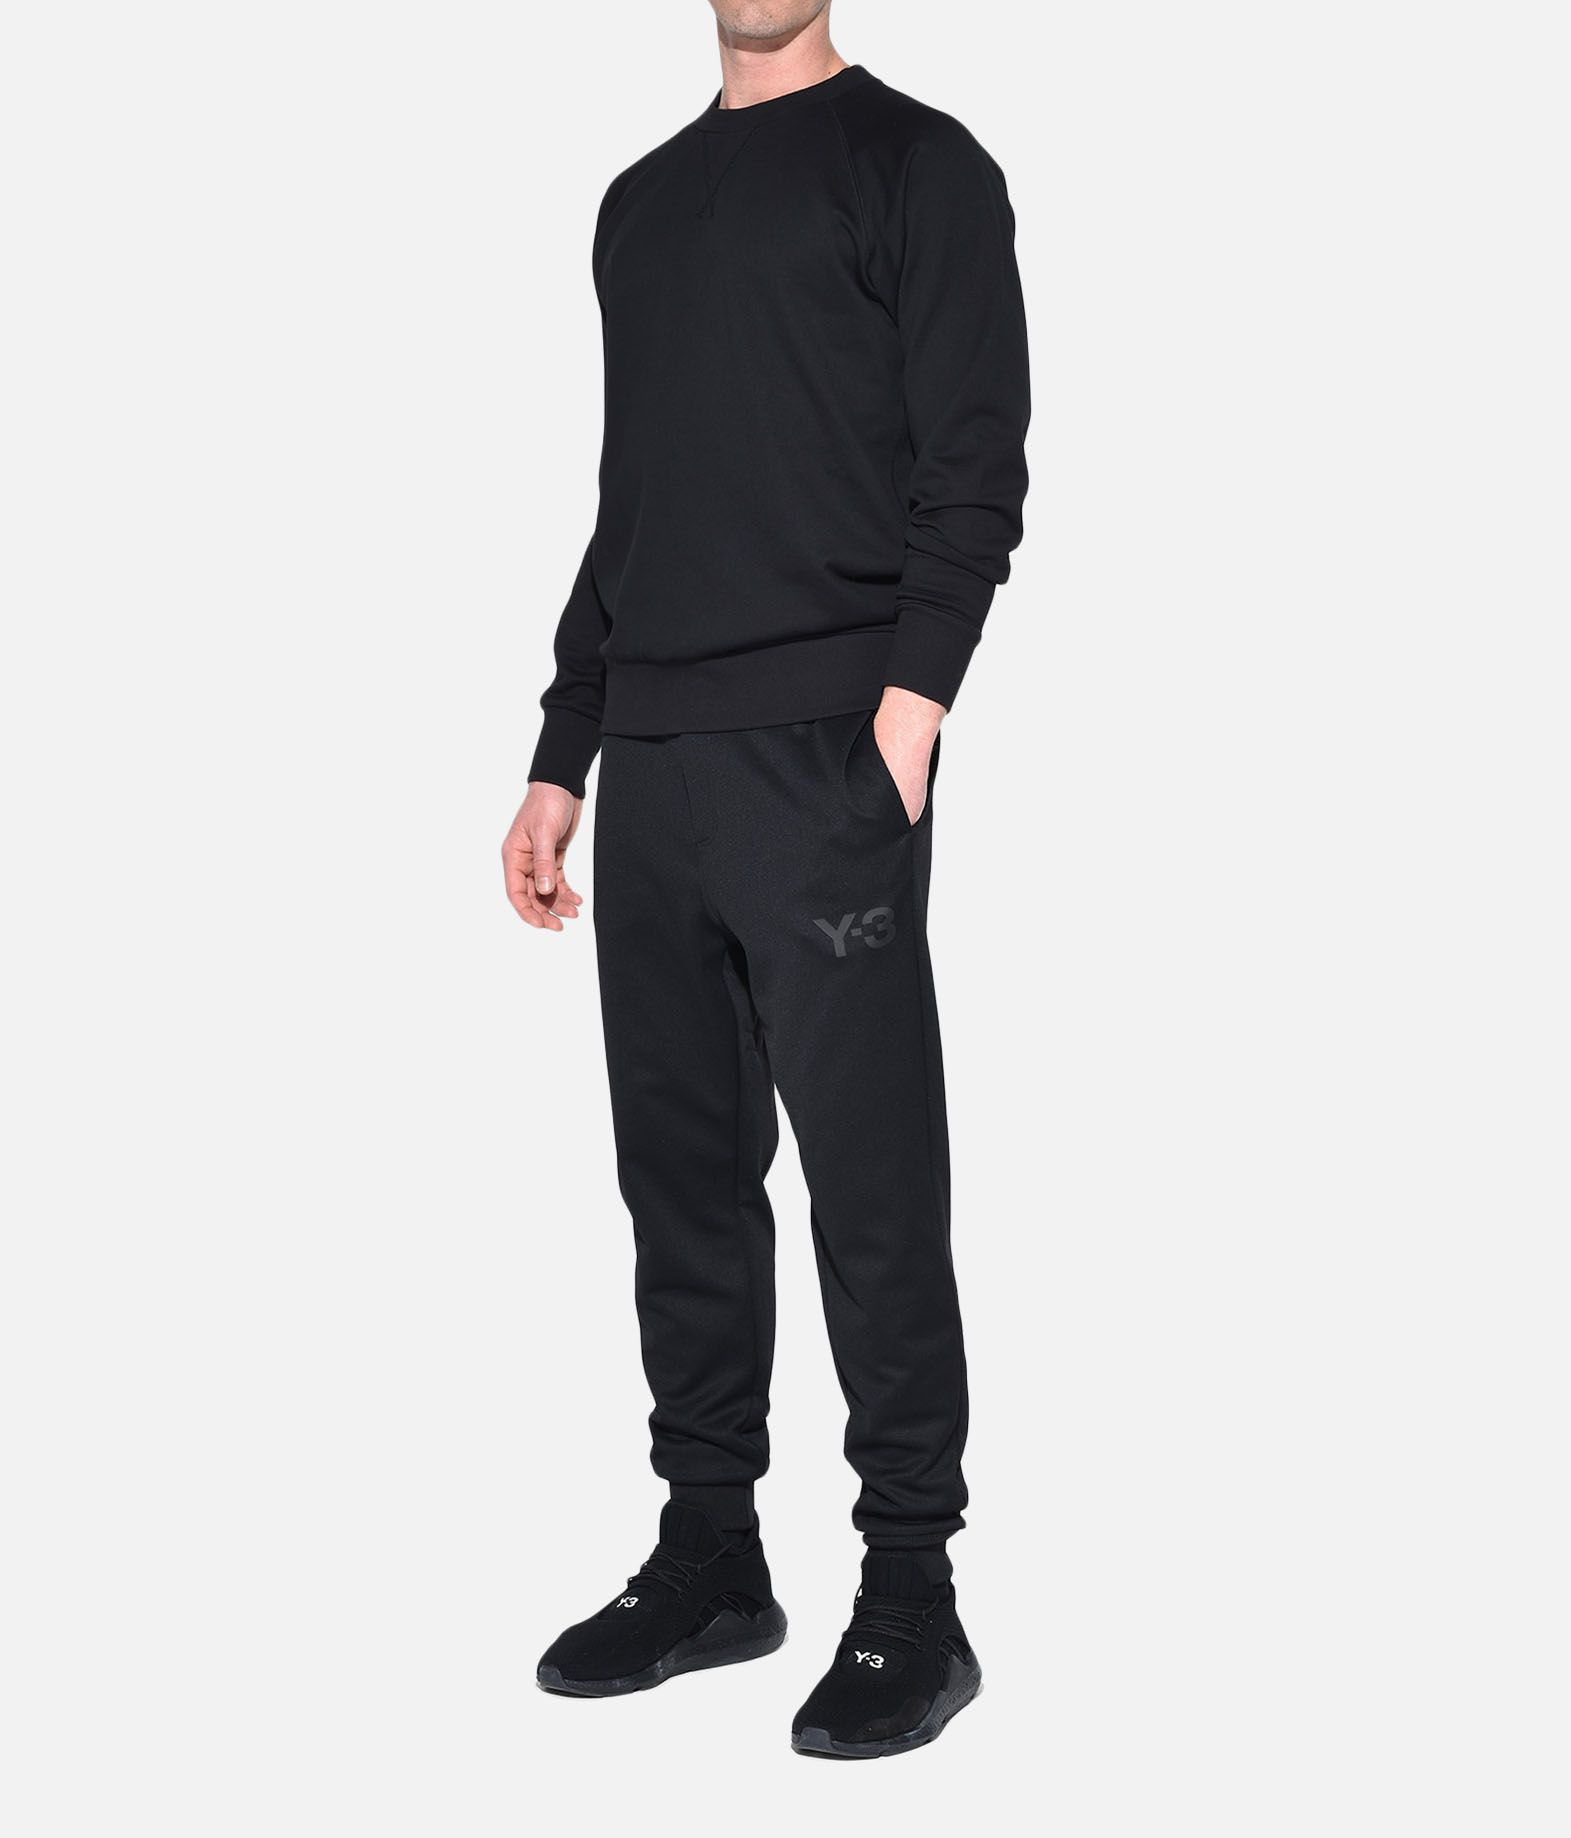 Y-3 Y-3 CLASSIC TRACK PANTS Track pant Homme a